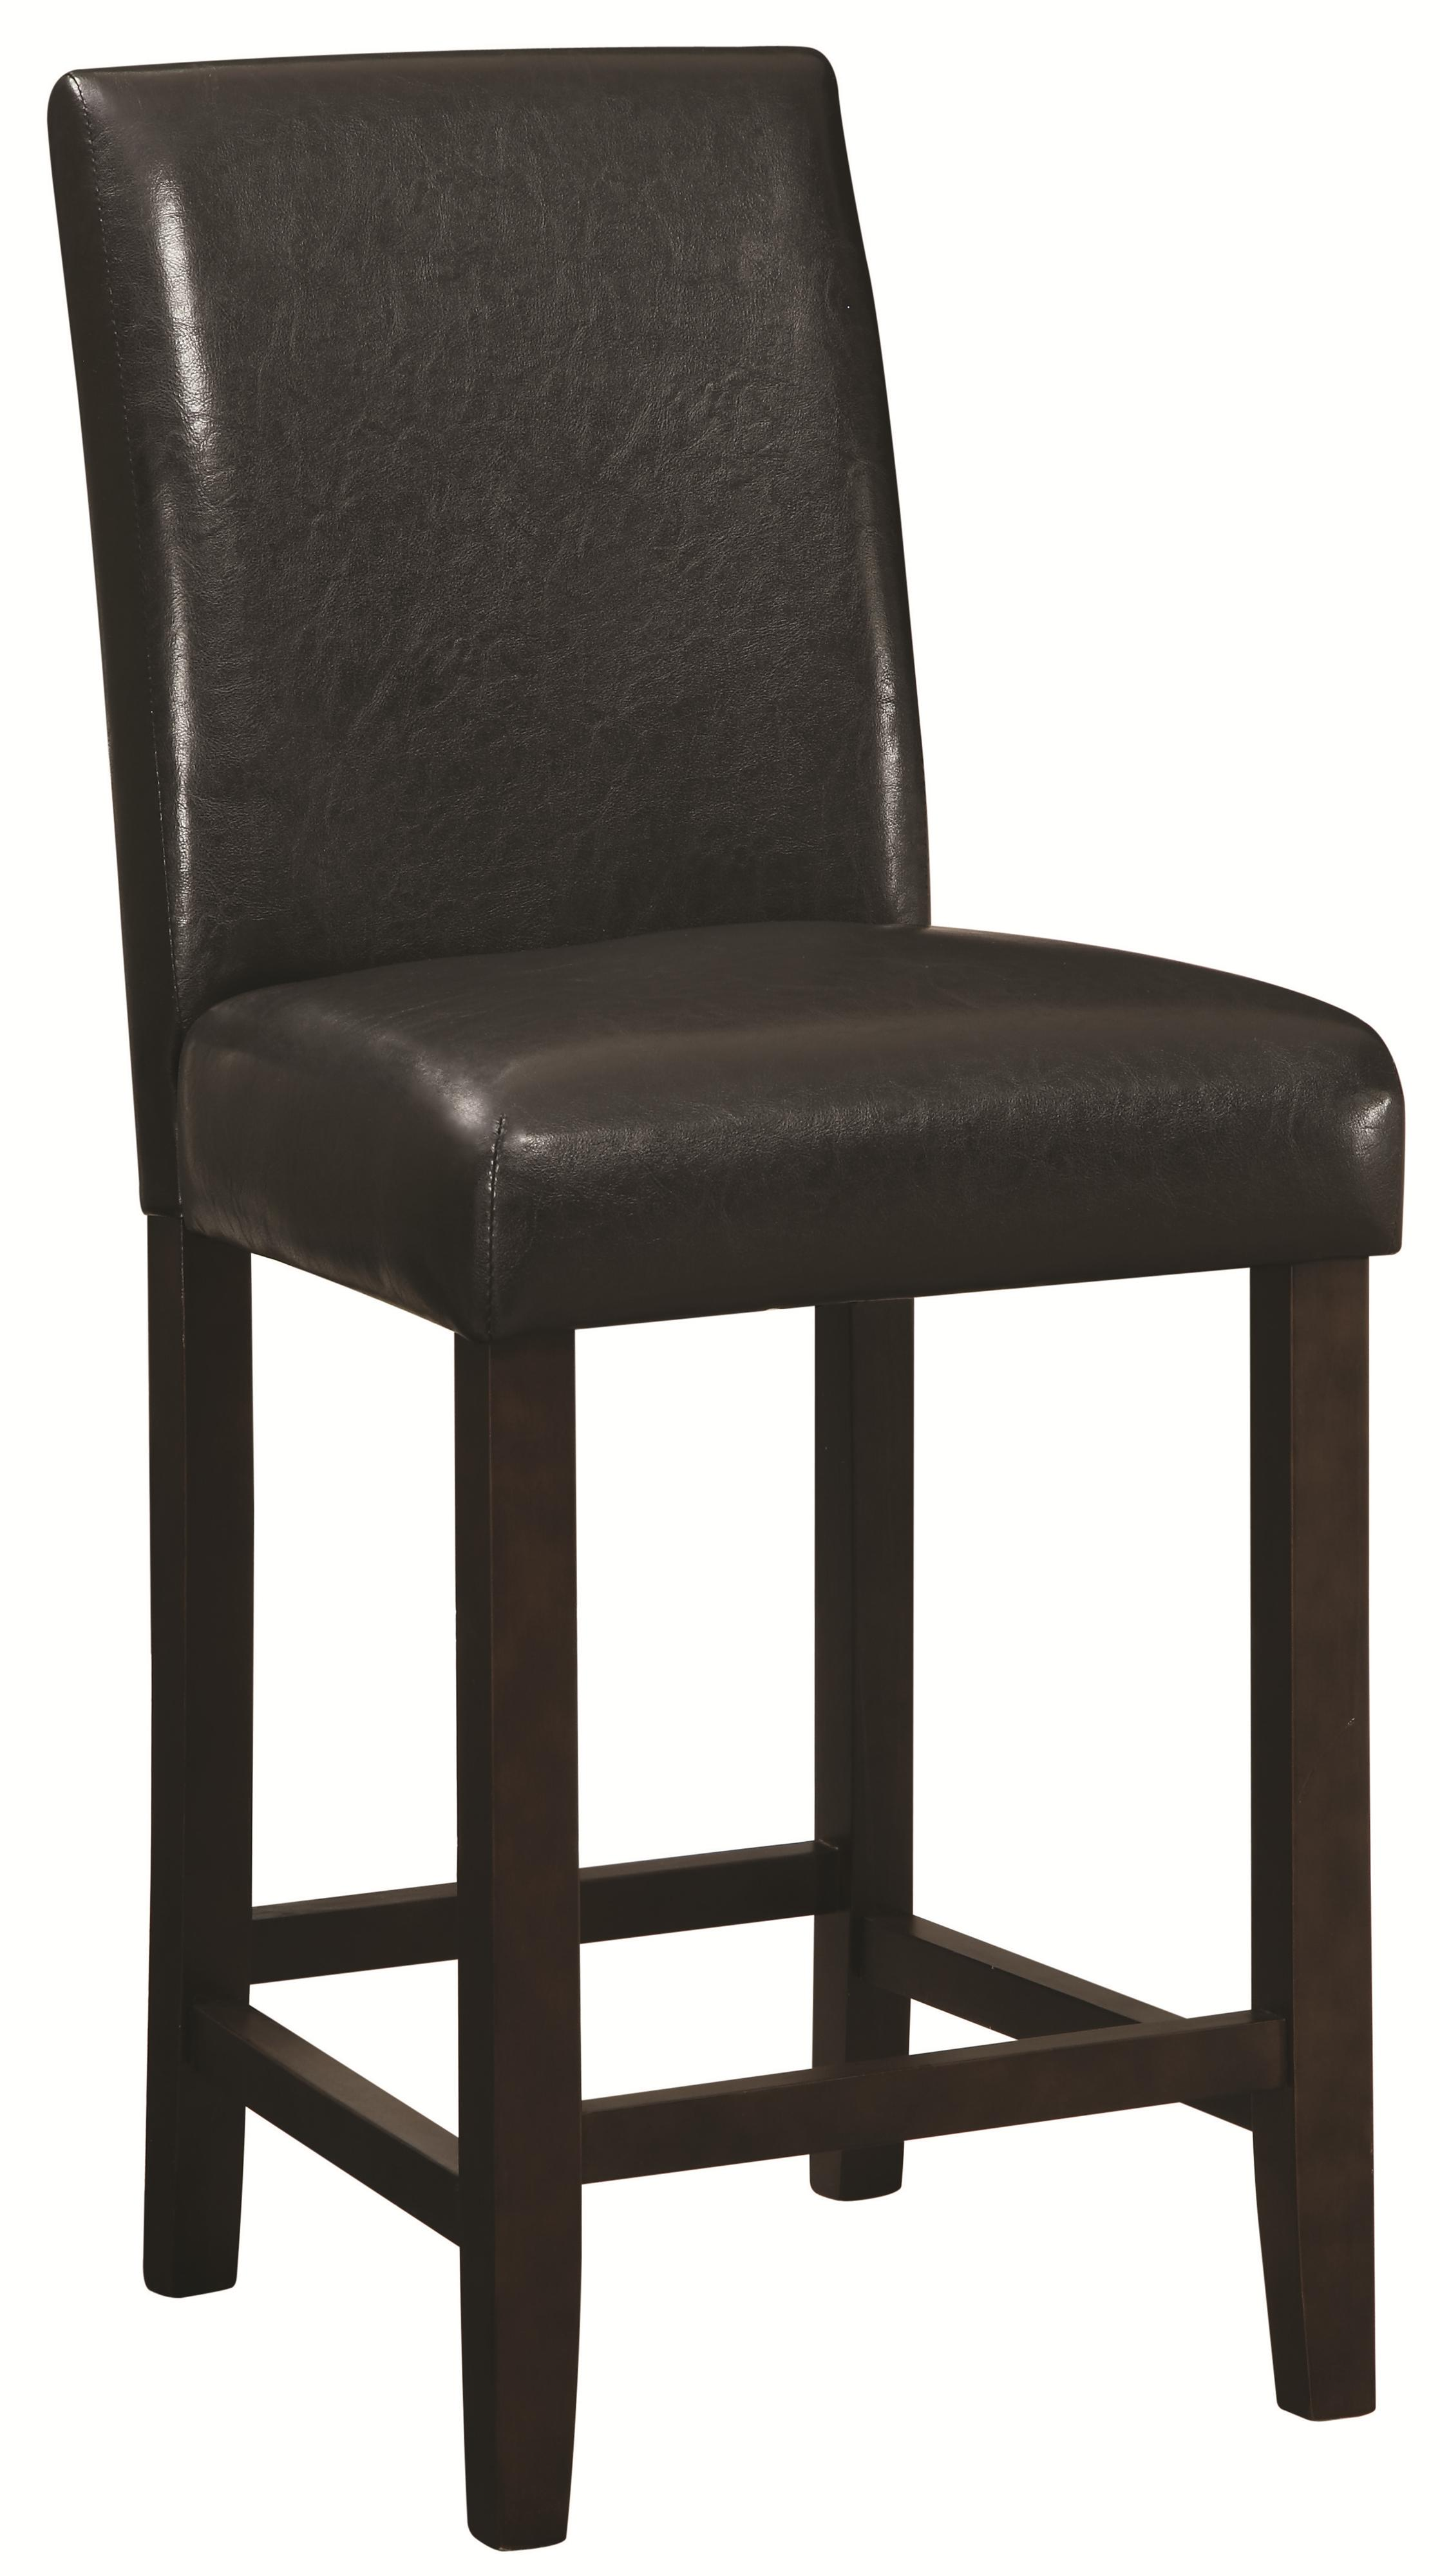 Accent Seating Counter Height Stool by Coaster at Lapeer Furniture & Mattress Center